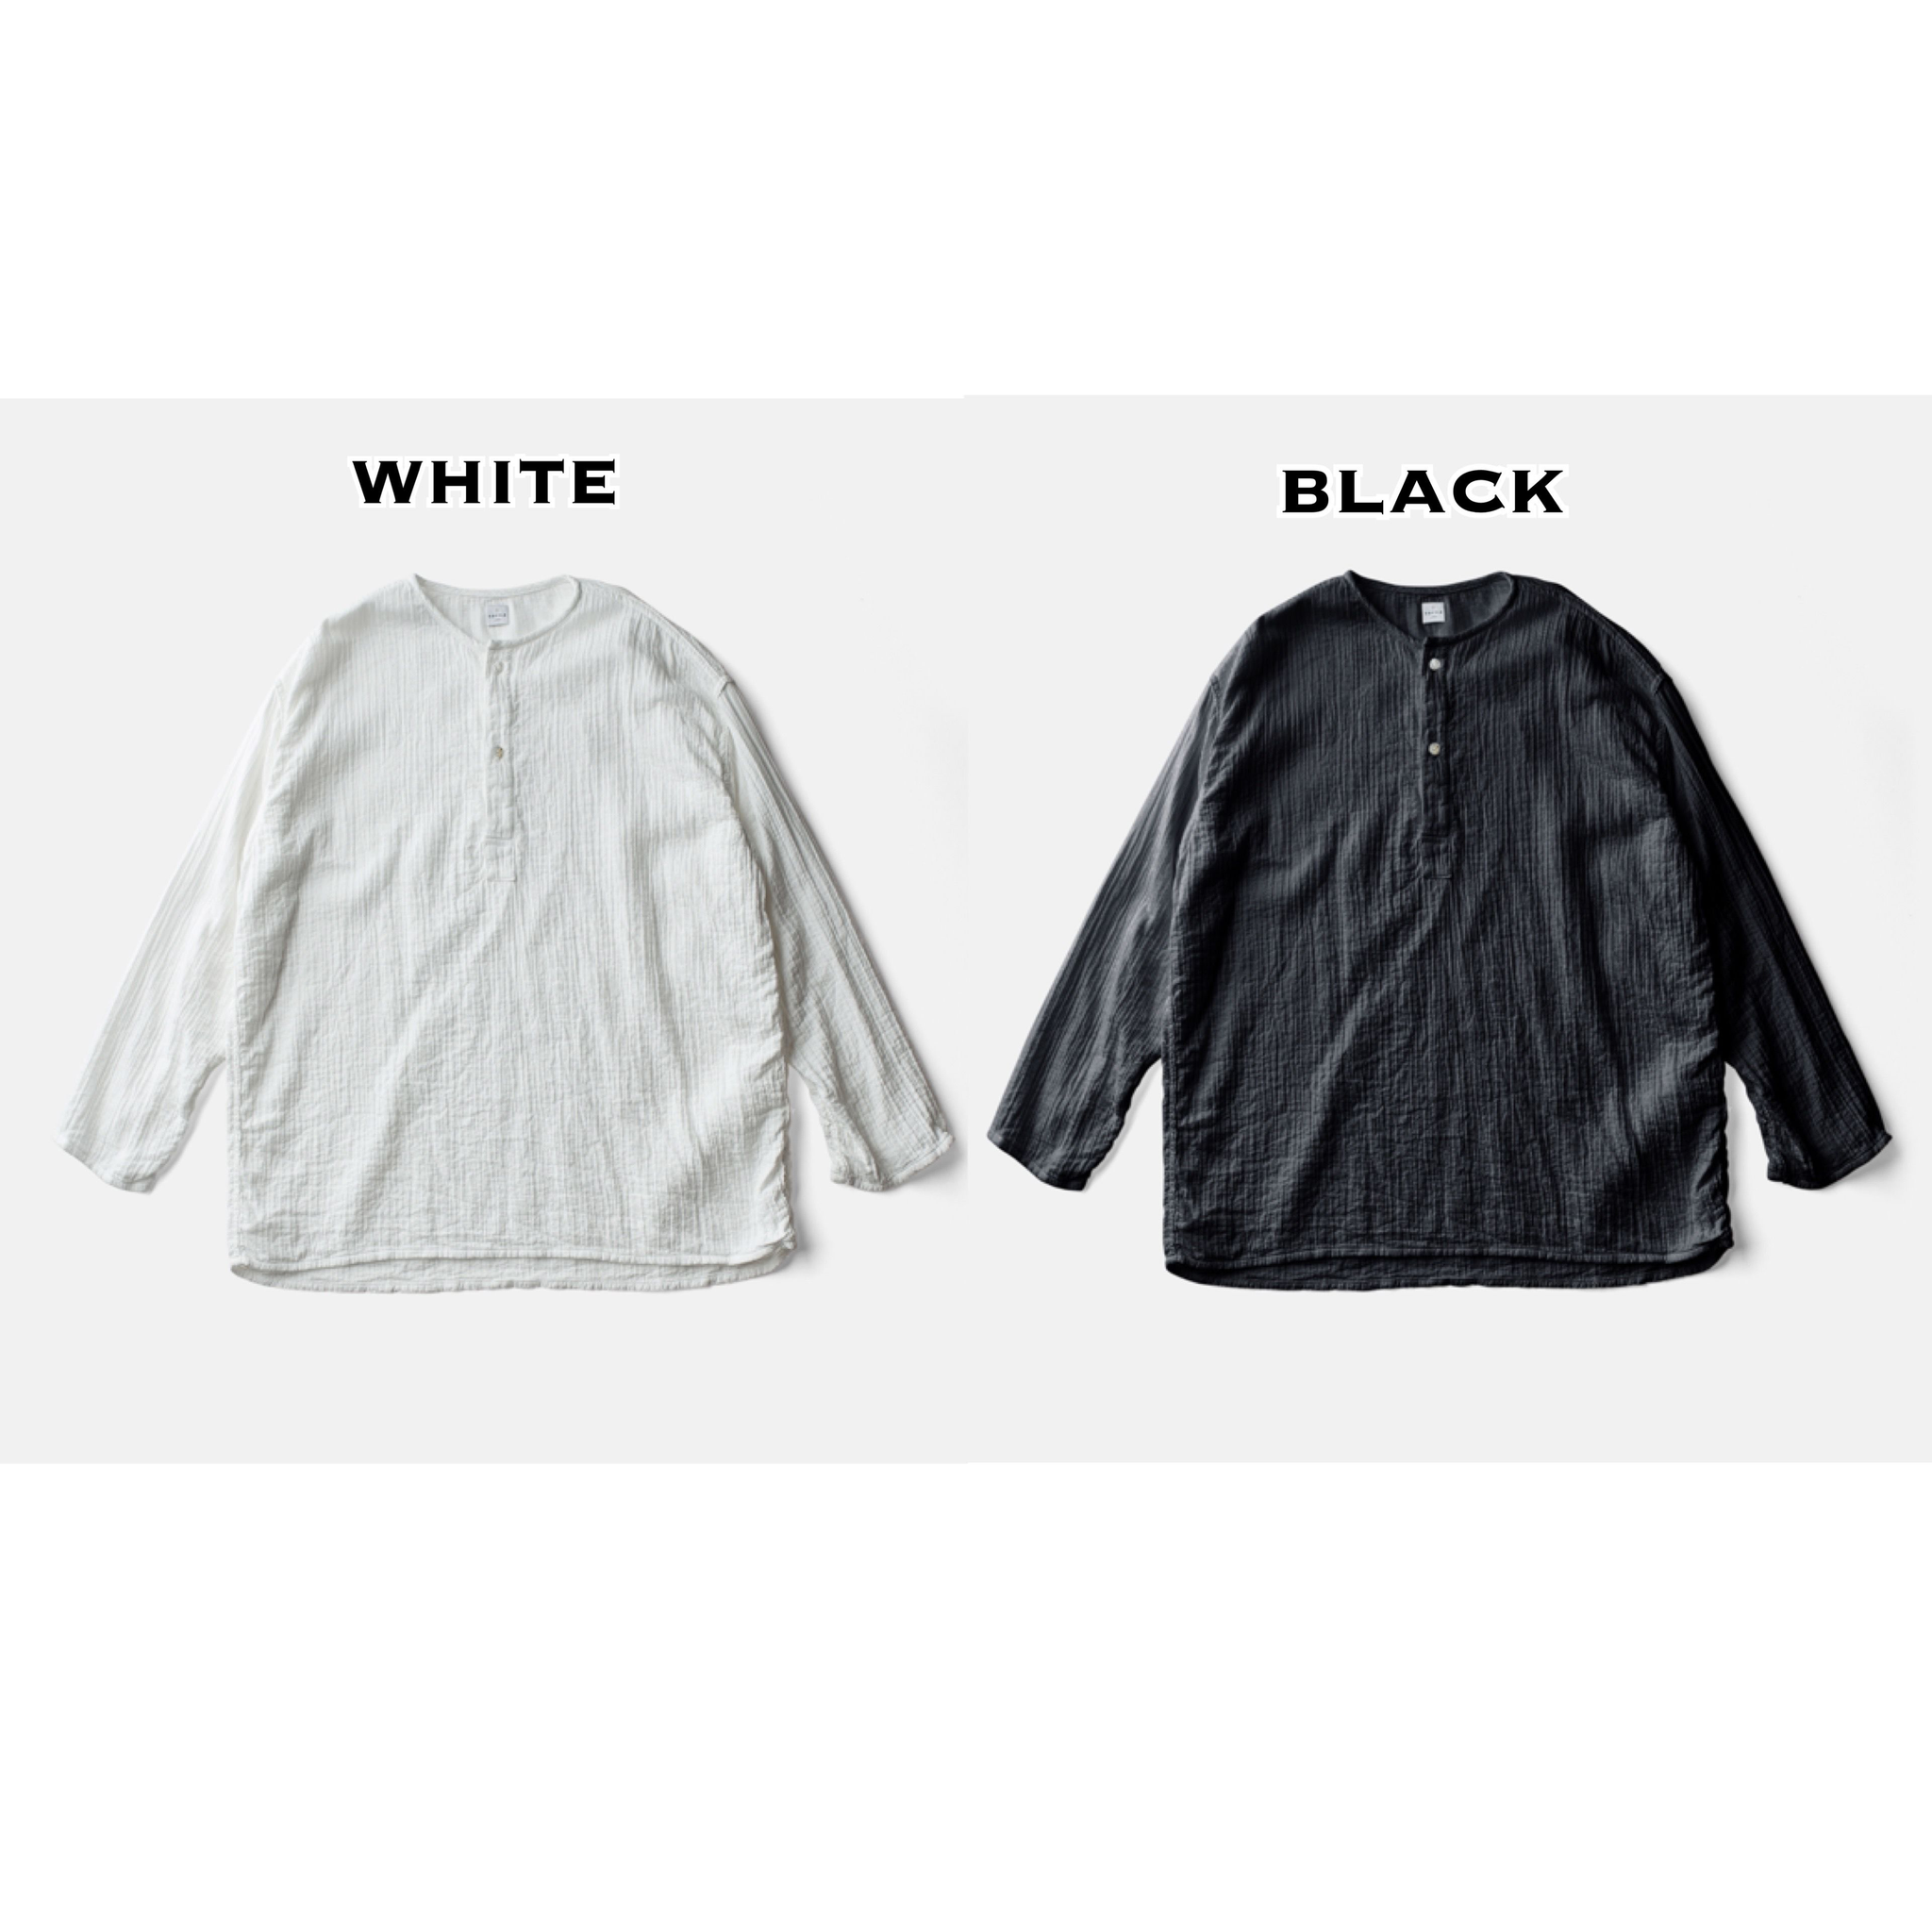 SLEEP WHISPERING SEA COTTON SHIRTーBLACK